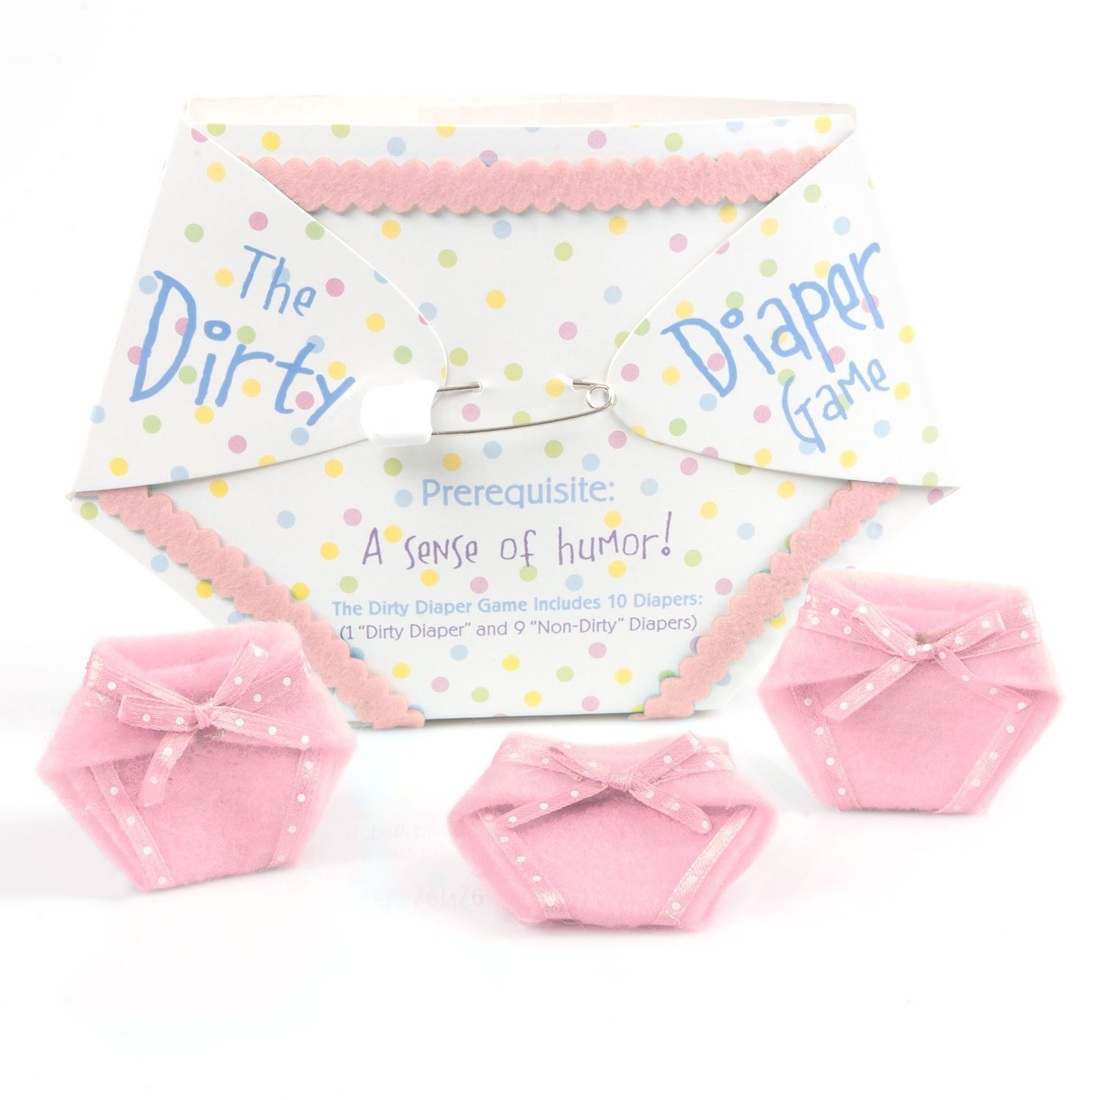 The Dirty Diaper Game